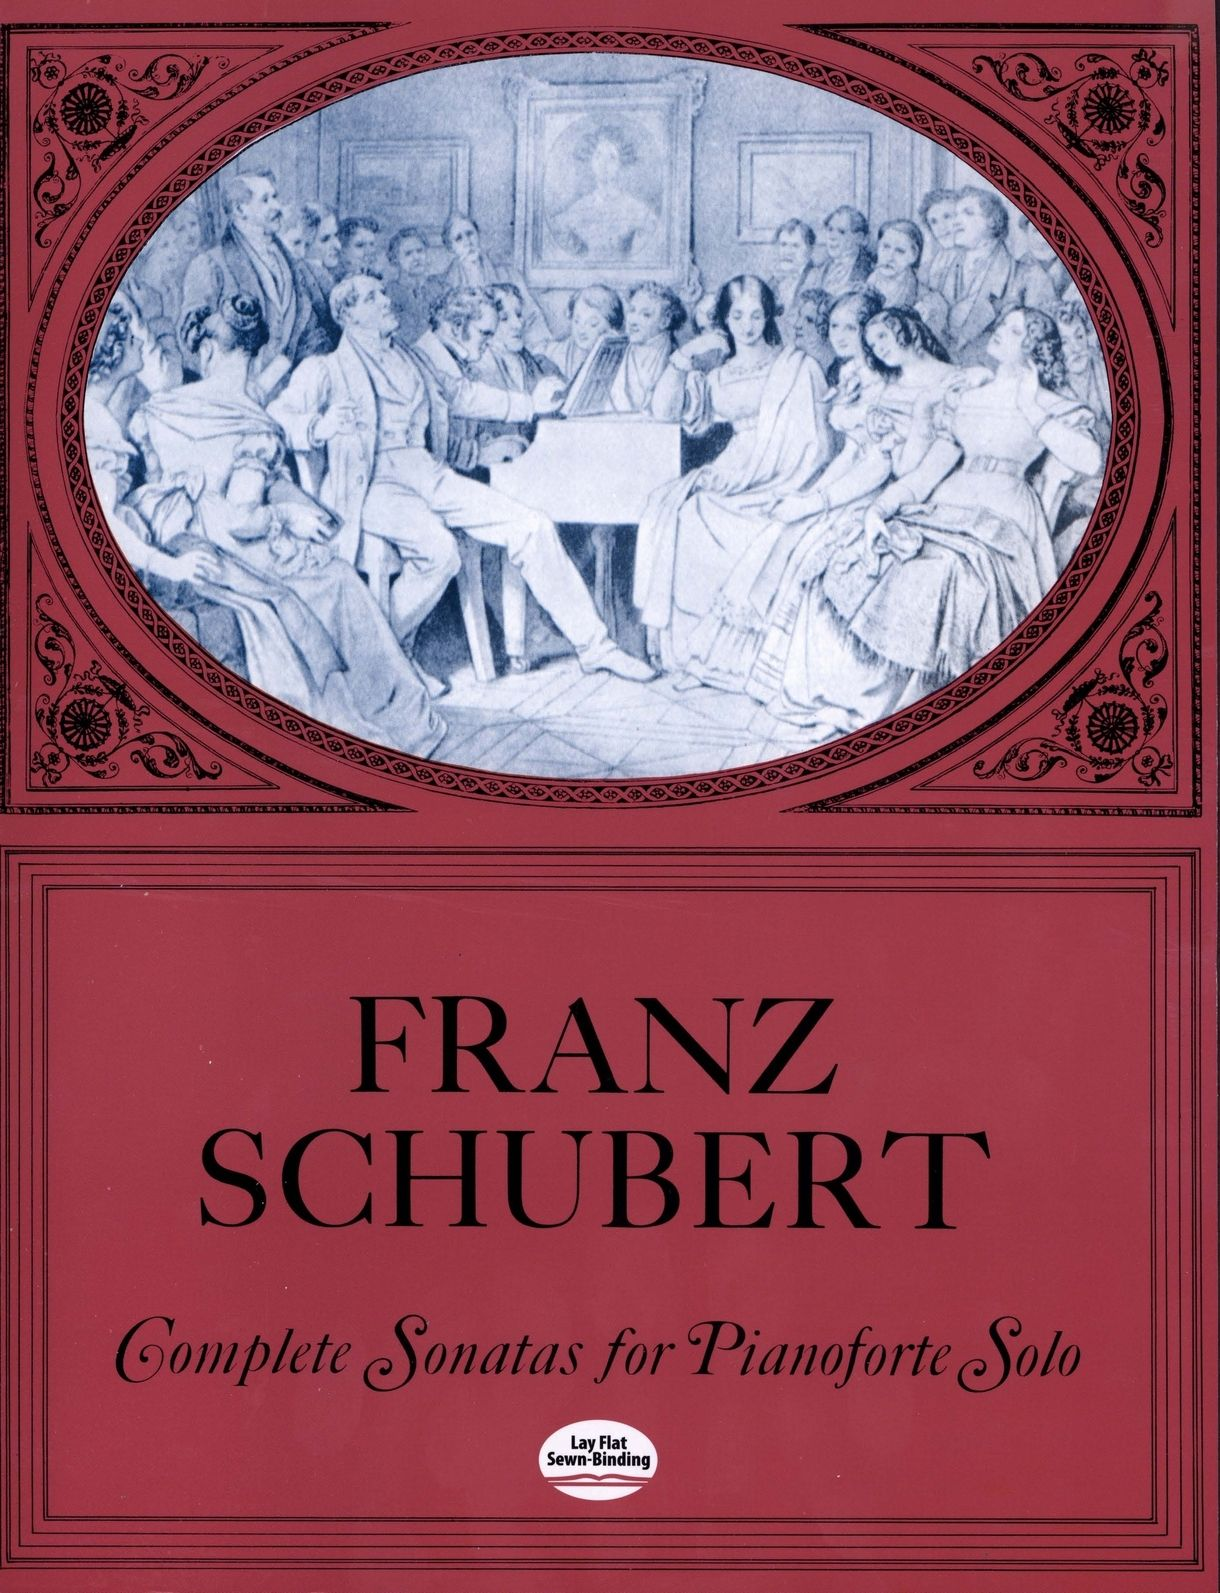 Complete Sonatas for Pianoforte Solo by Franz Schubert This affordable  edition includes all 15 of Schubert's sonatas, reprinted from the  authoritative and ...